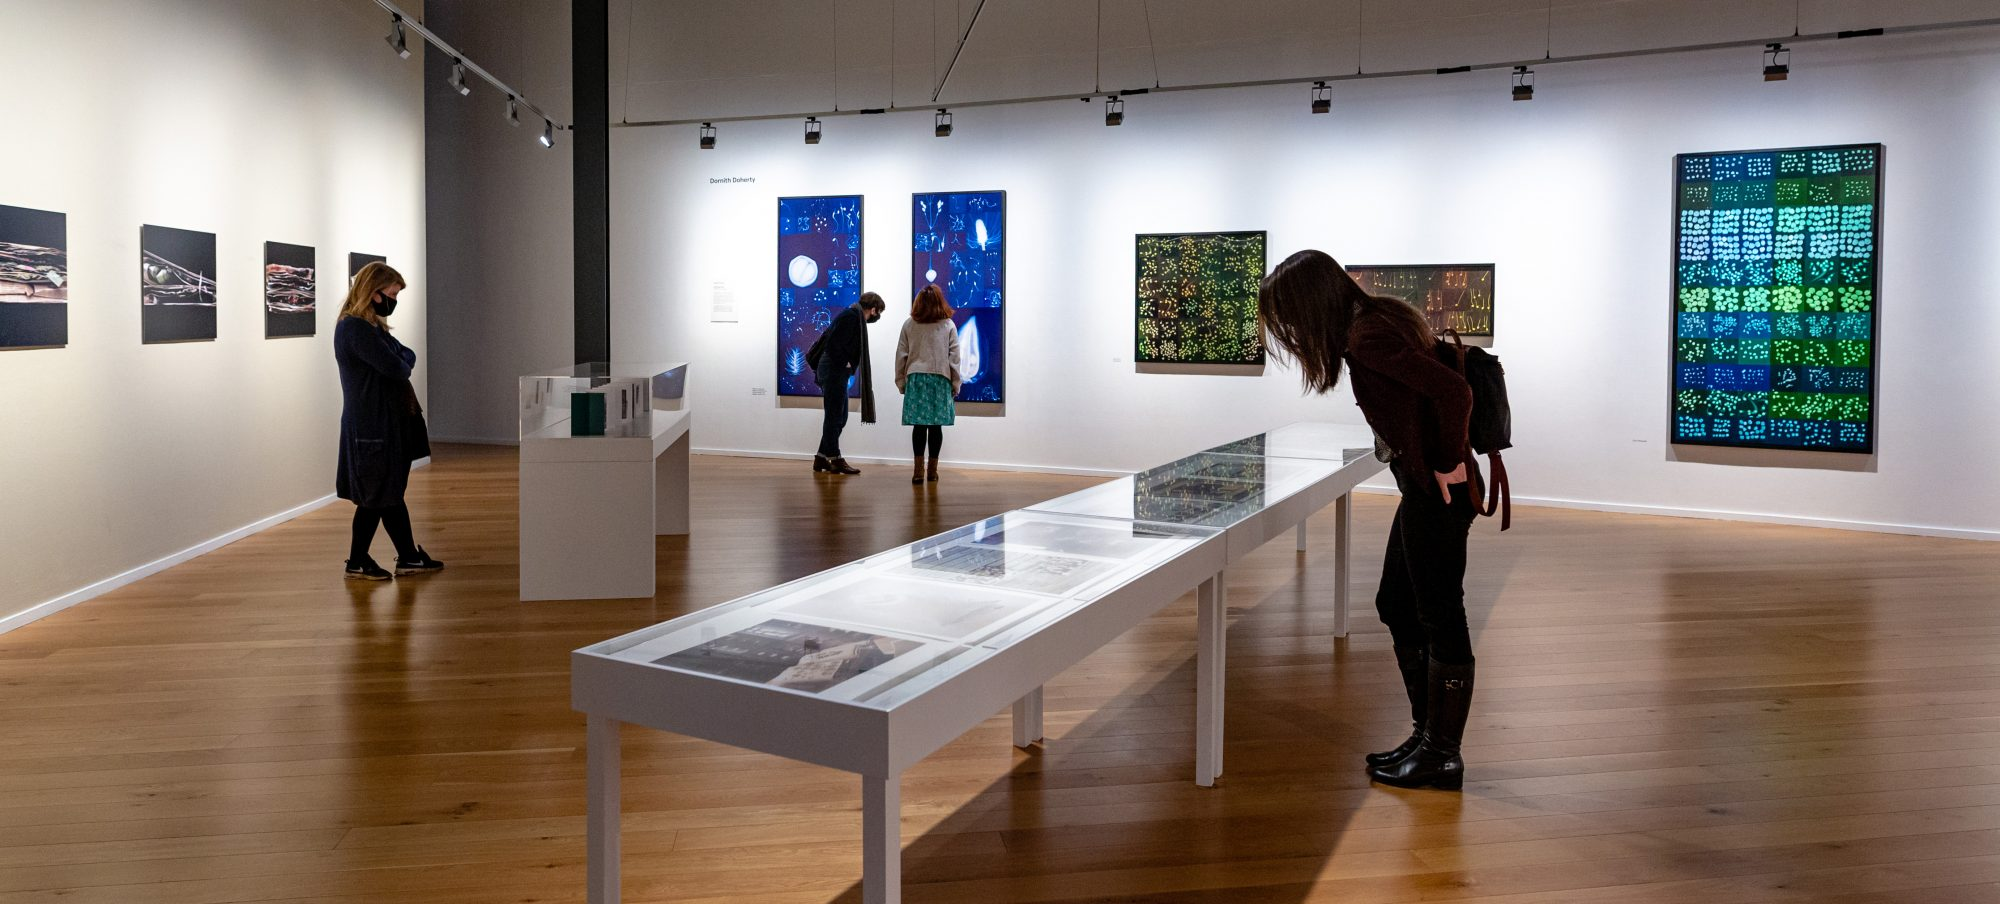 Visitors looking at the exhibition Seedscapes